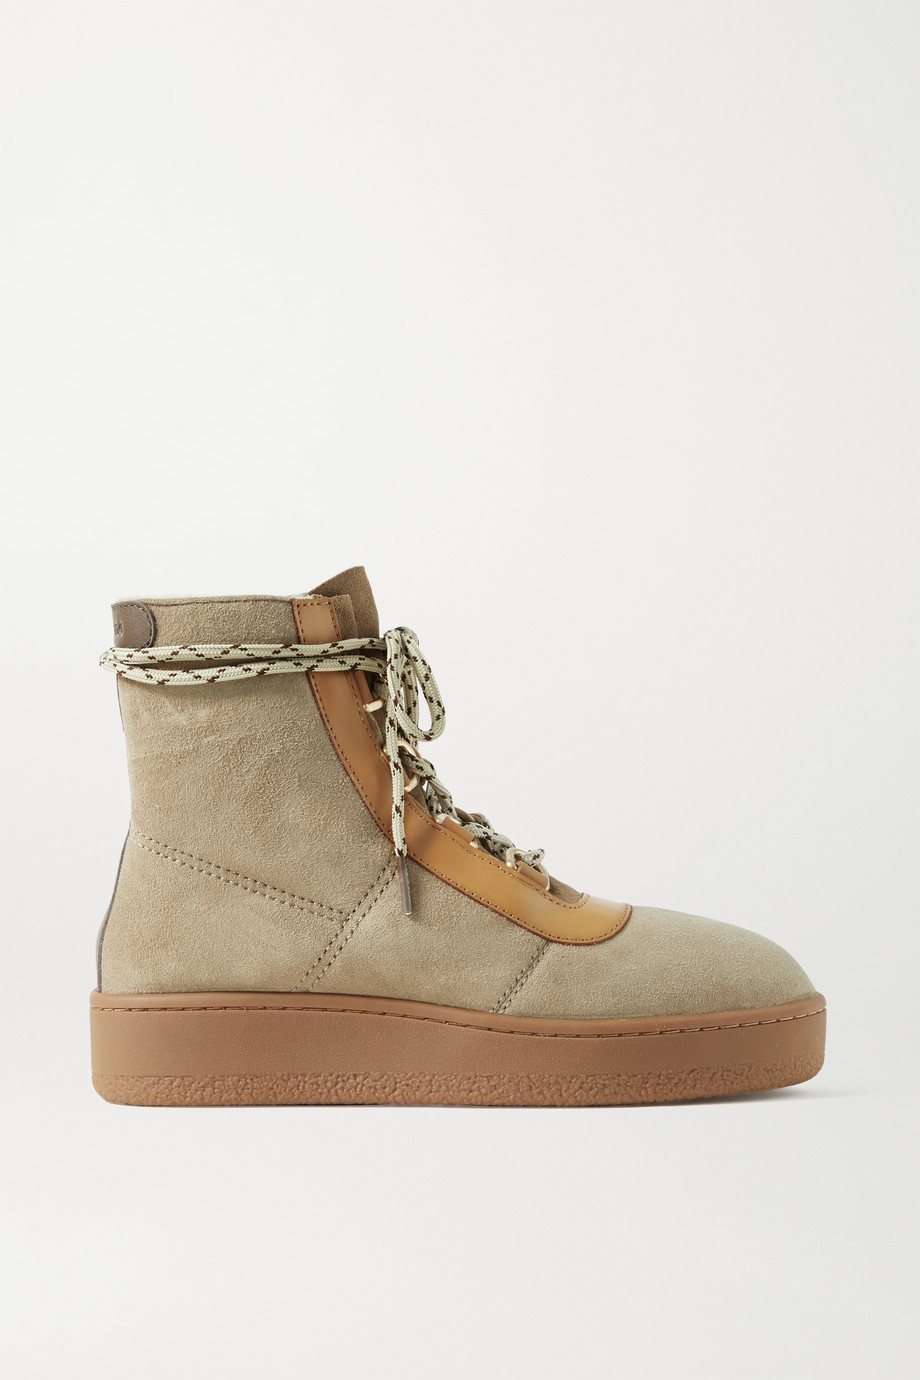 RAG & BONE Oslo leather-trimmed suede platform ankle boots